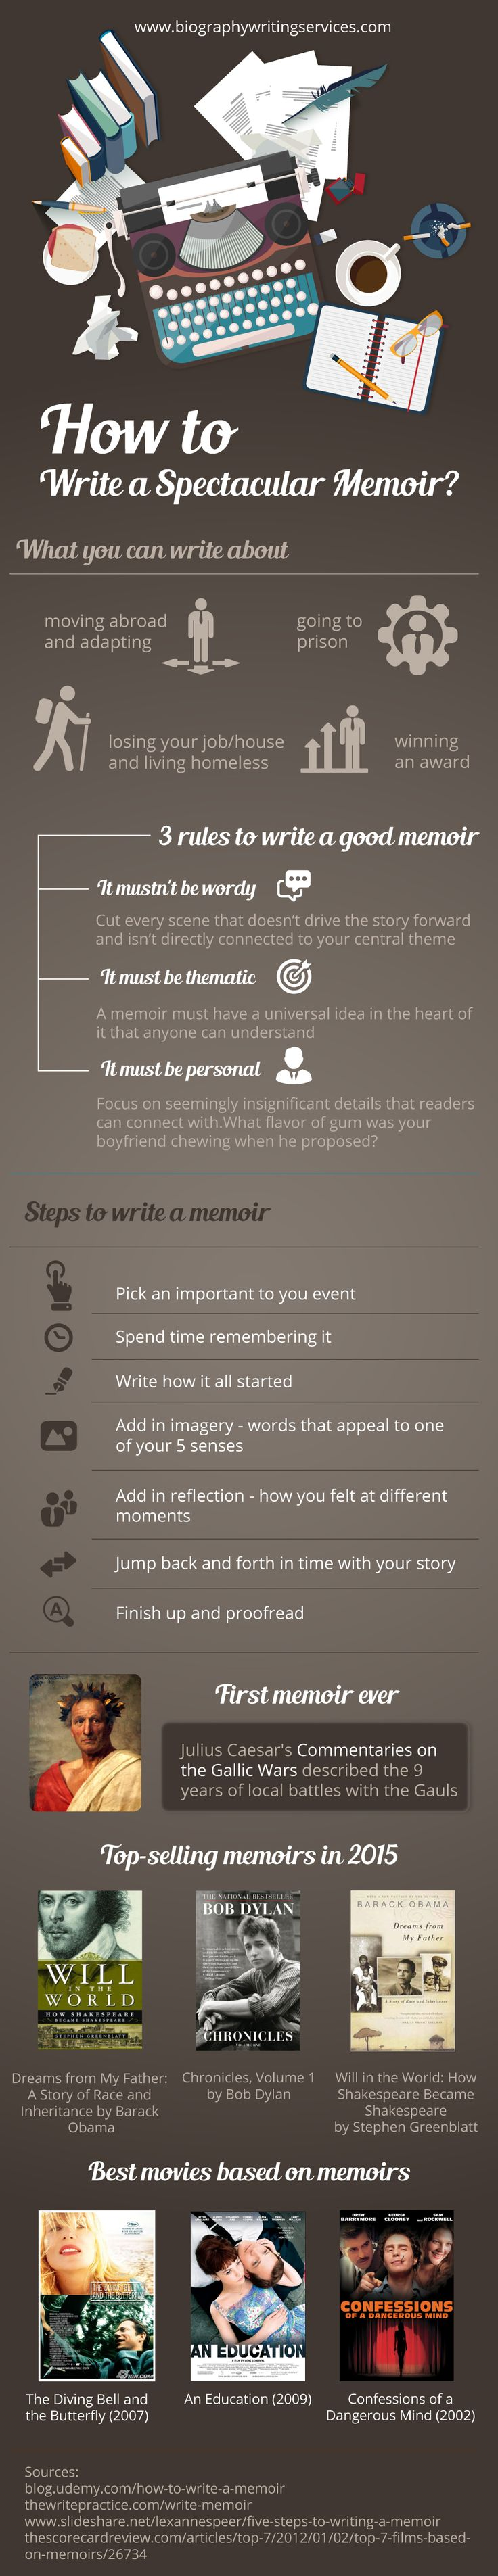 how to write a spectacular memoir inforgaphic